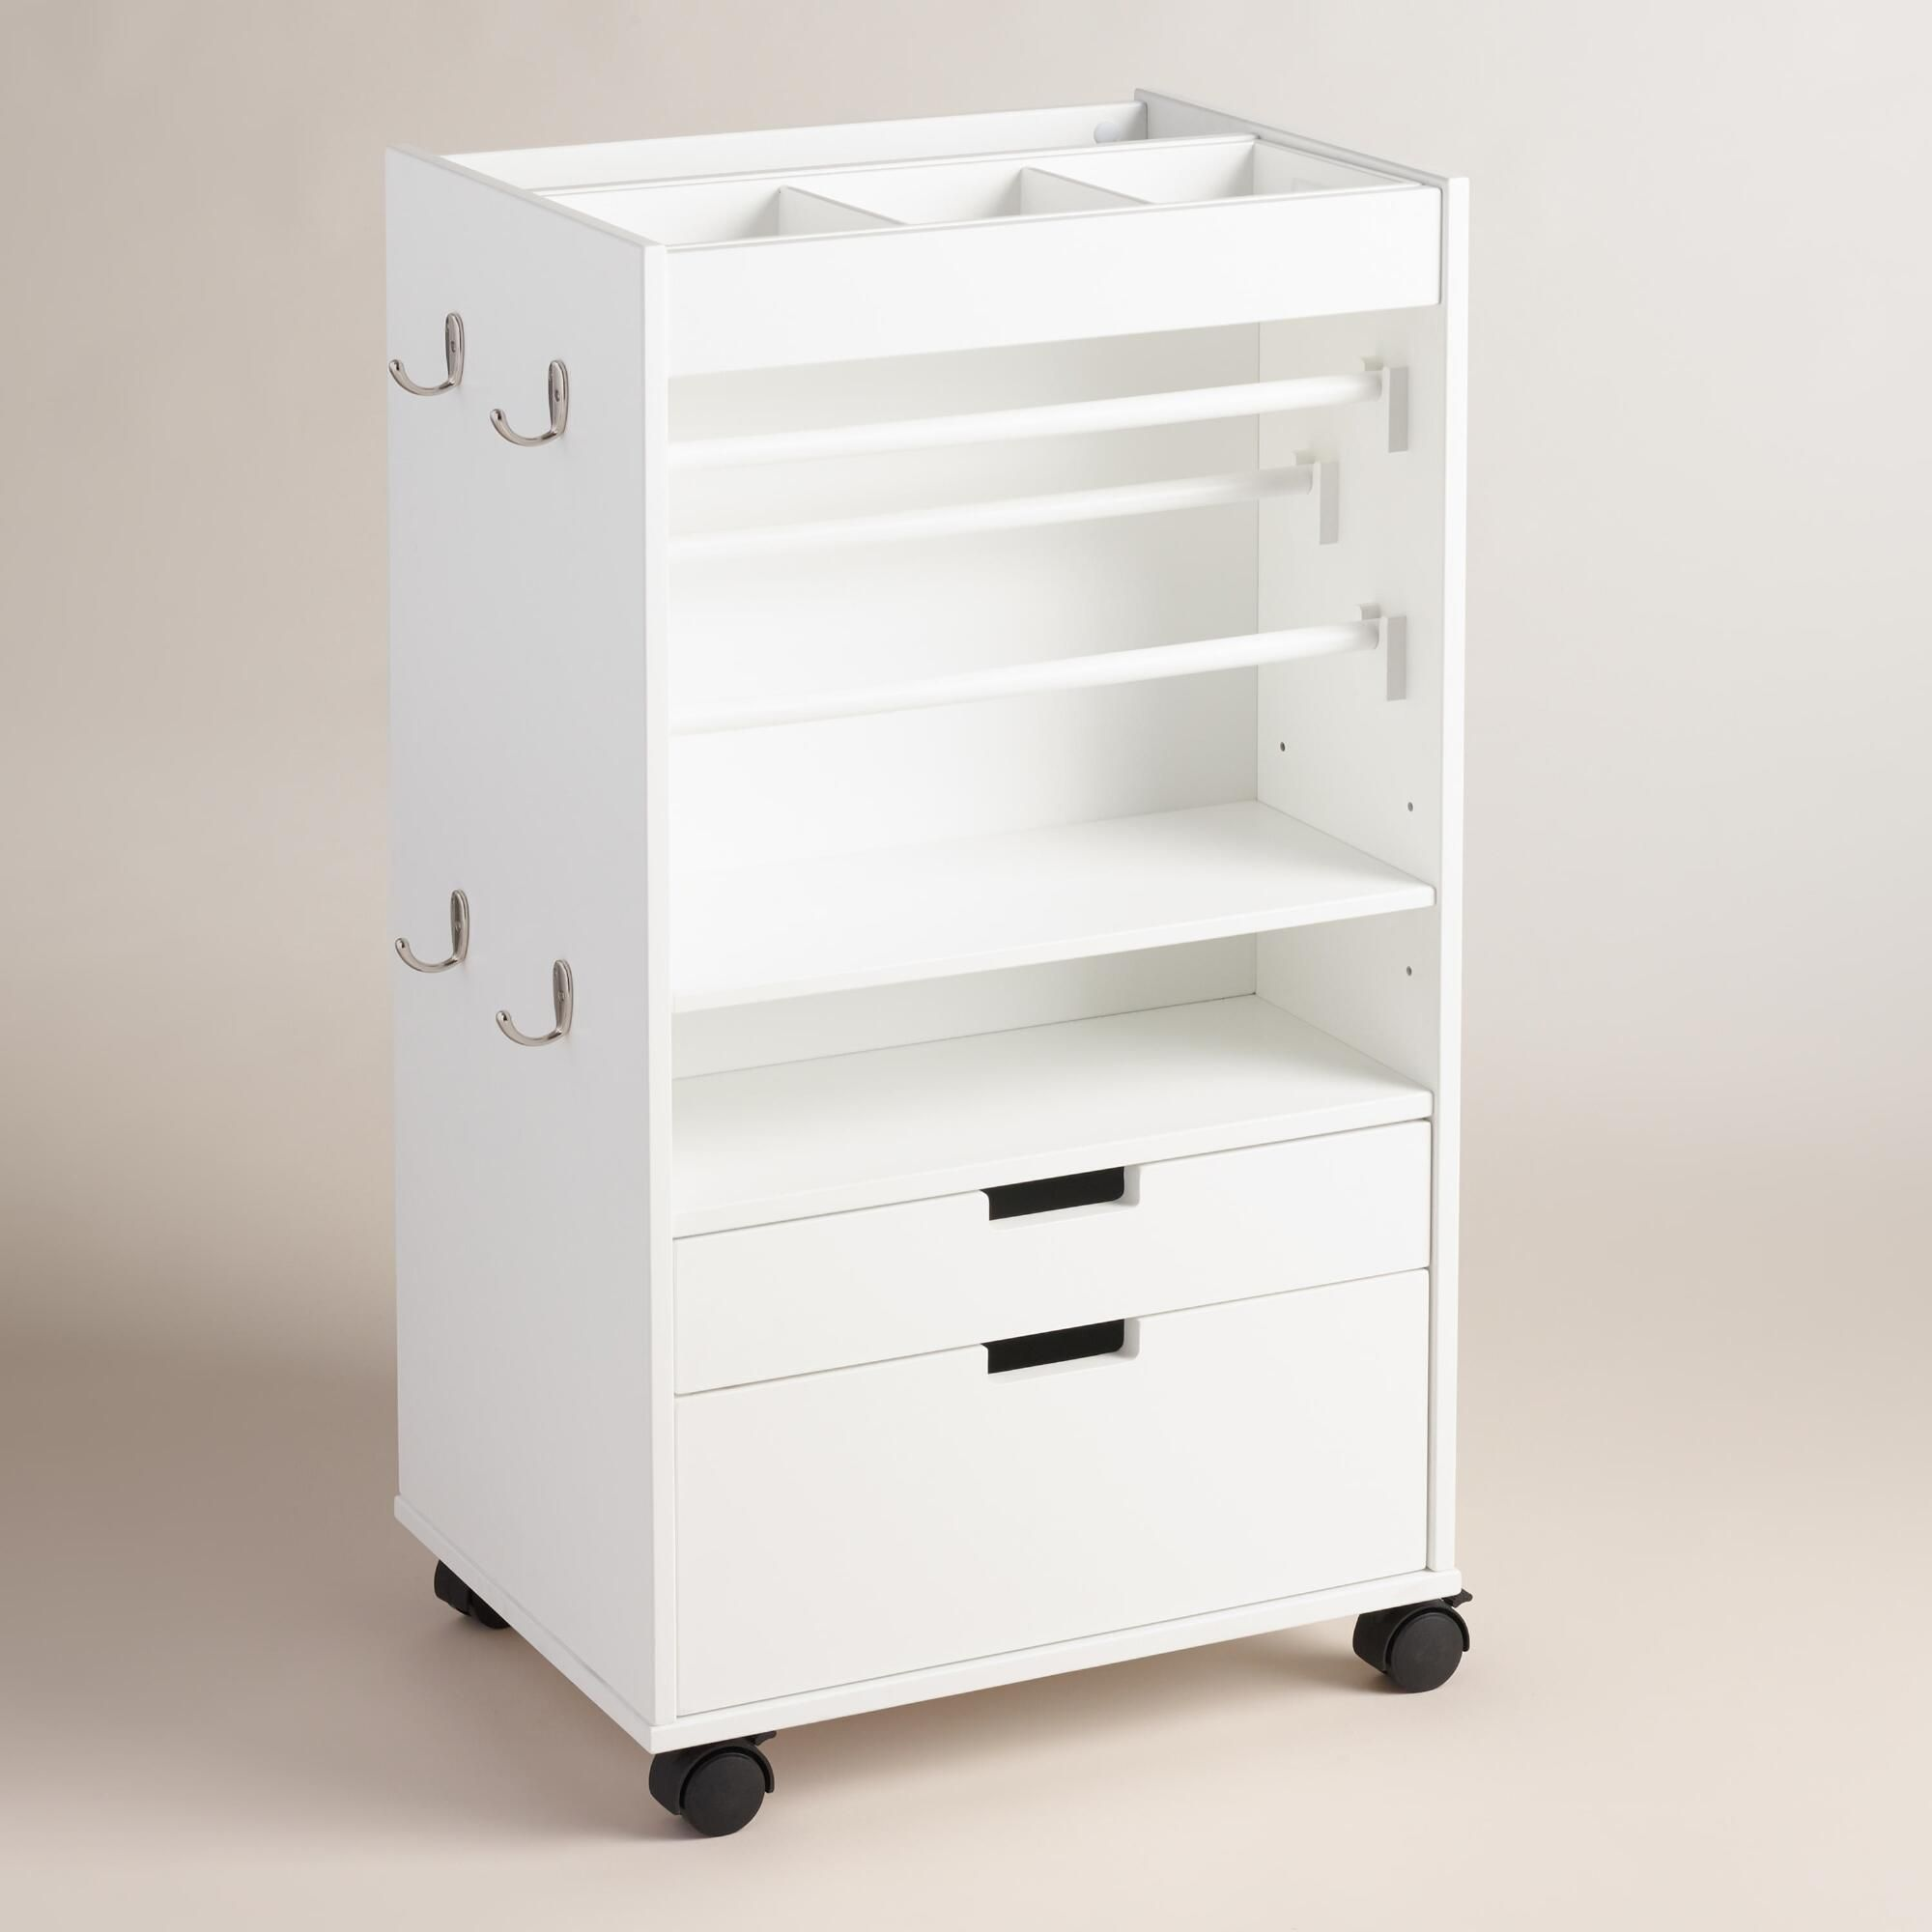 Rolling craft cart with drawers - Rolling Craft Cart